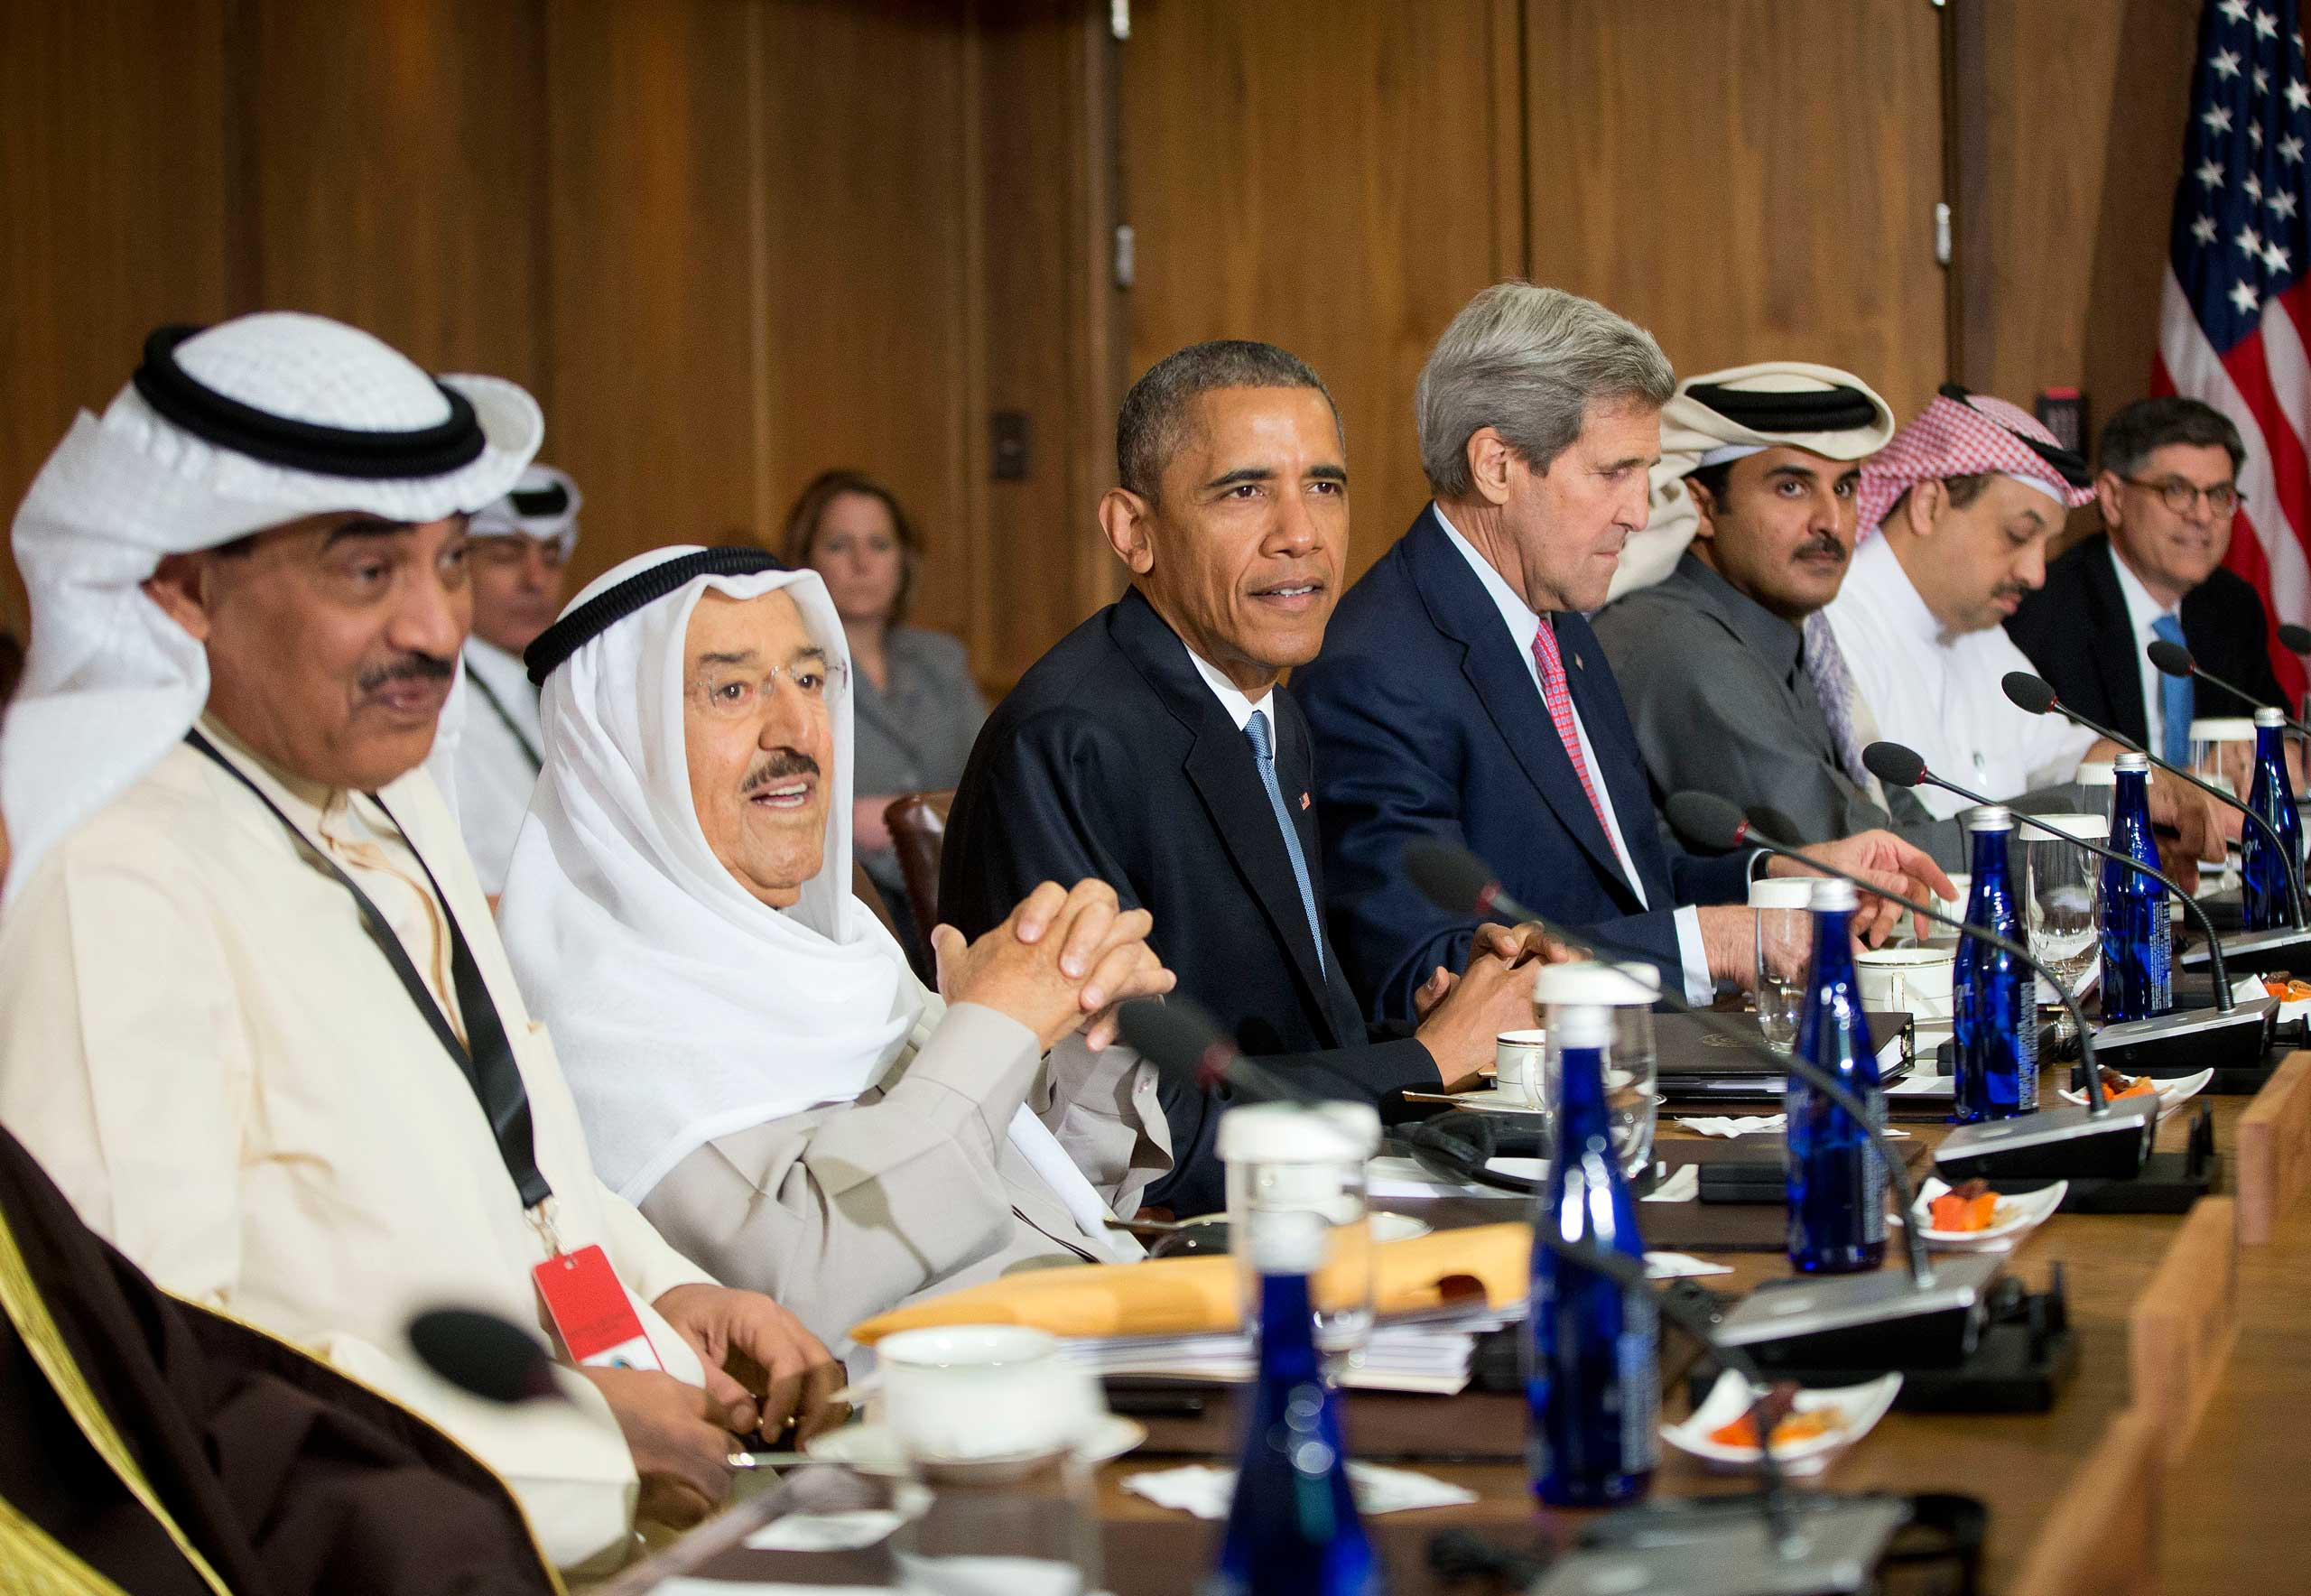 President Barack Obama sits with Kuwaiti Emir Sheikh Sabah Al-Ahmad Al-Sabah, left center, Secretary of State John Kerry, right center, and other Gulf Cooperation Council leaders and delegations at Camp David, Md., on May 14, 2015.